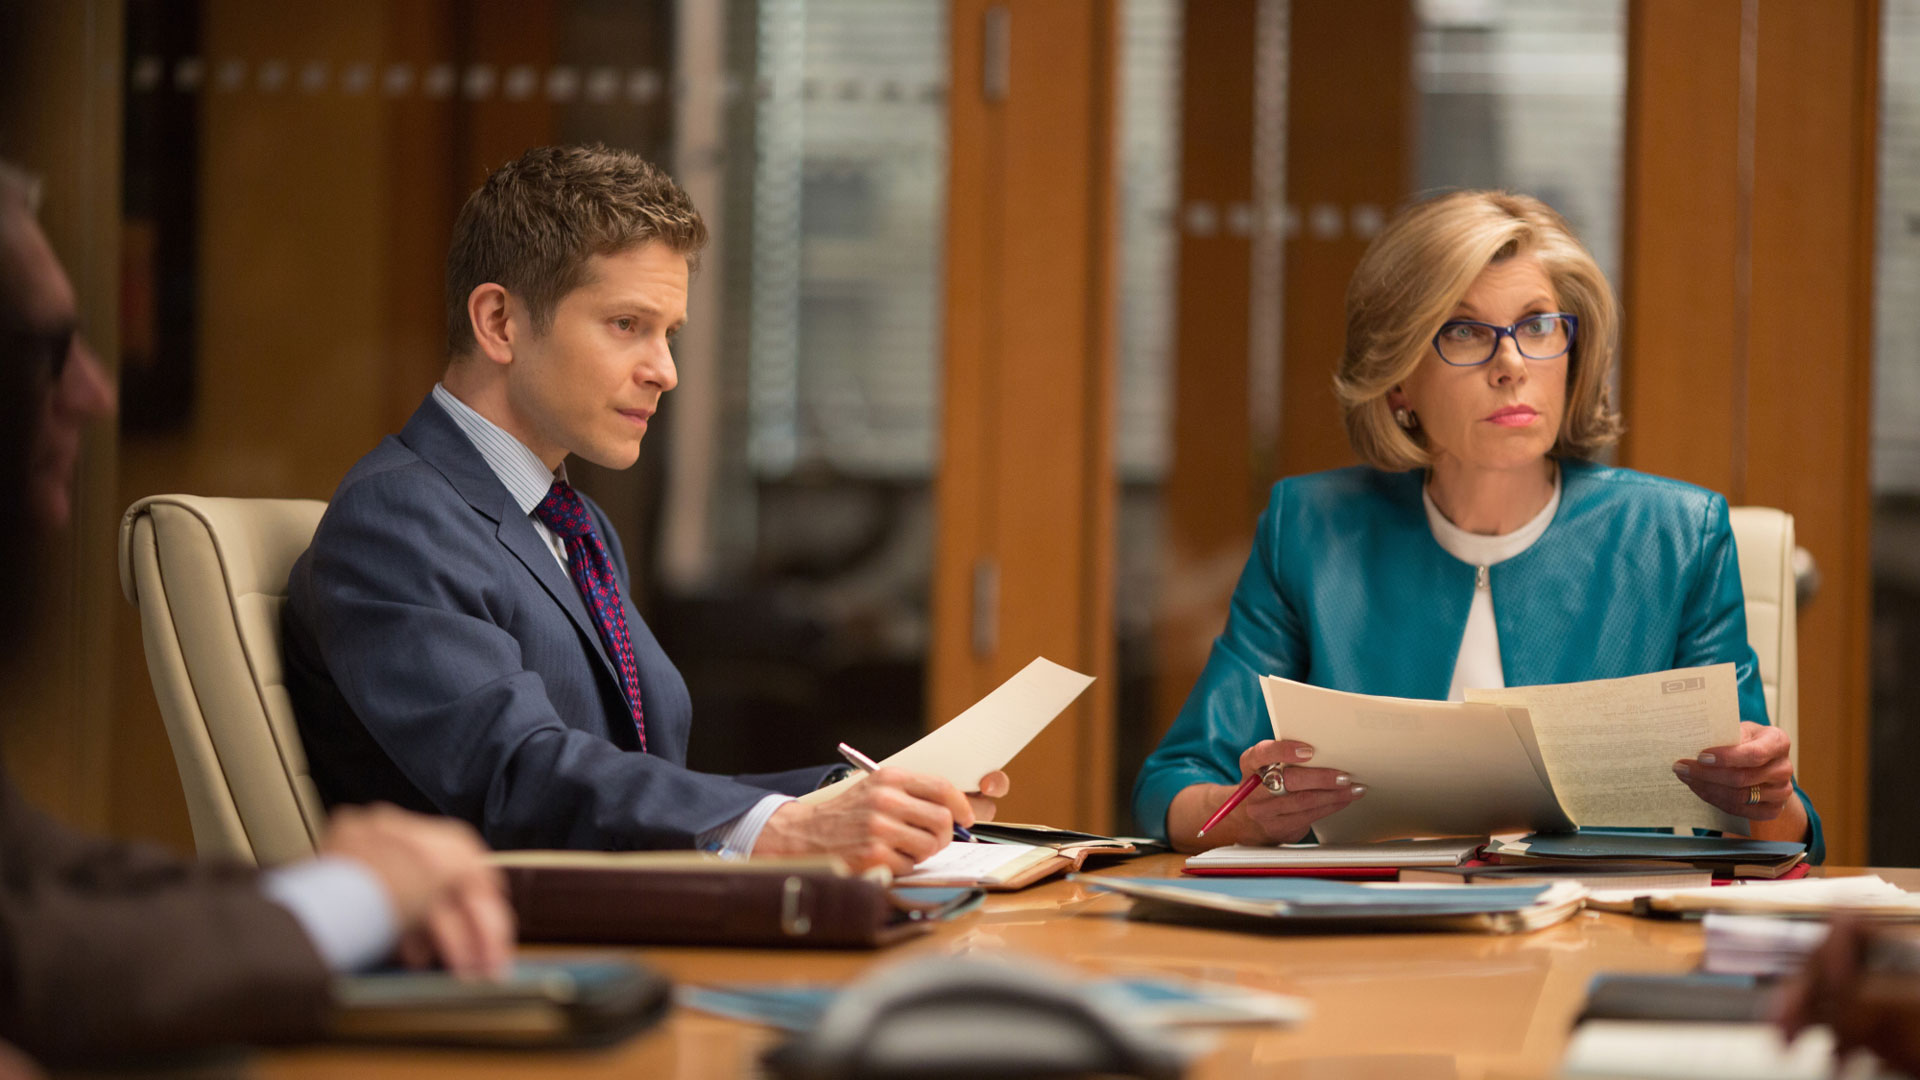 Matt Czuchry as Cary Agos and Christine Baranski as Diane Lockhart